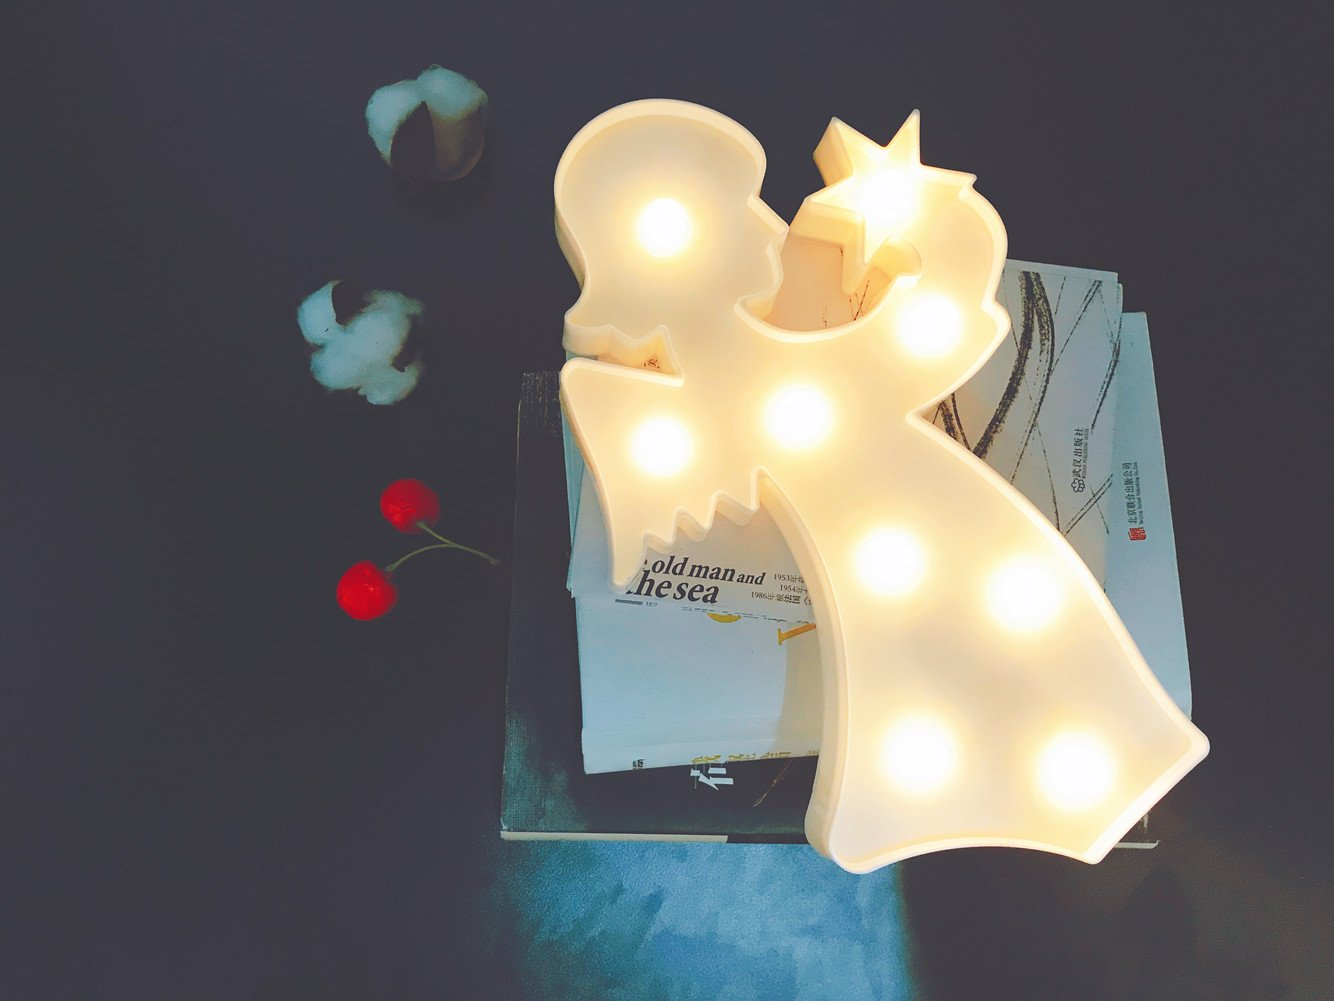 QiaoFei 3D Angel Marquee Sign Light,LED Angel Sign Shaped Decor Light,Wall Decor for Chistmas,Birthday party,Kids Room, Living Room, Wedding Party Decor(white)